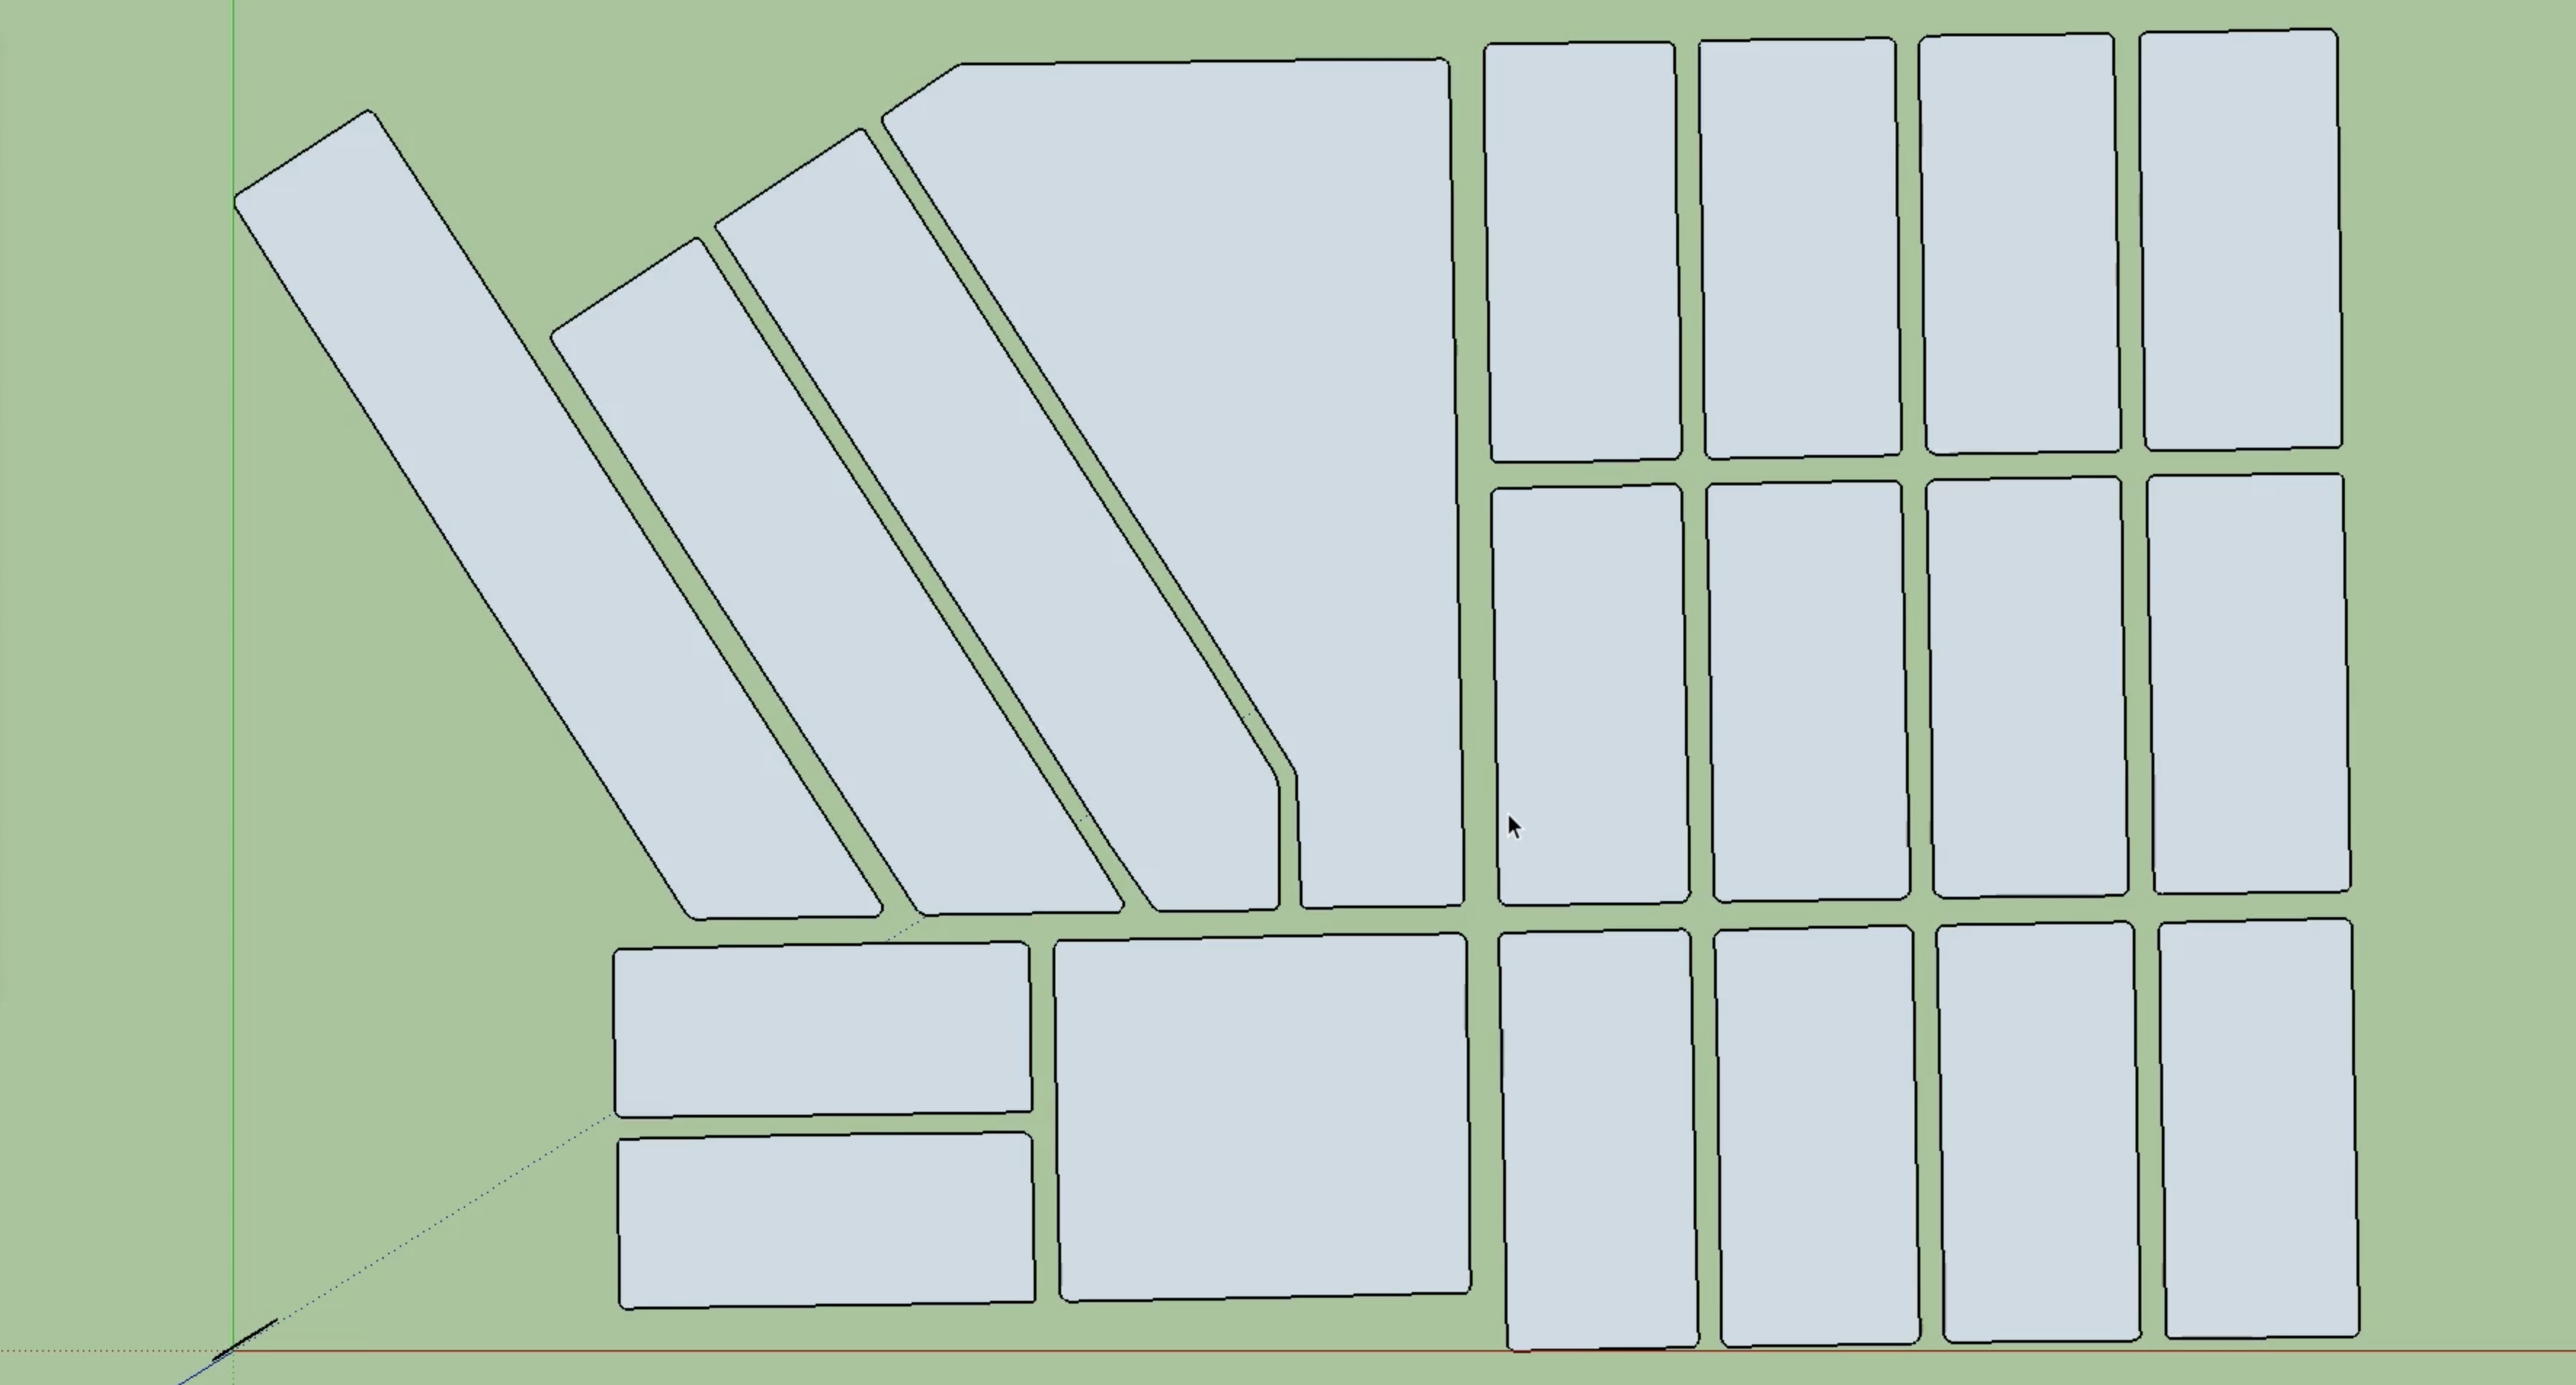 Imported blocks from bridgeport in Sketchup